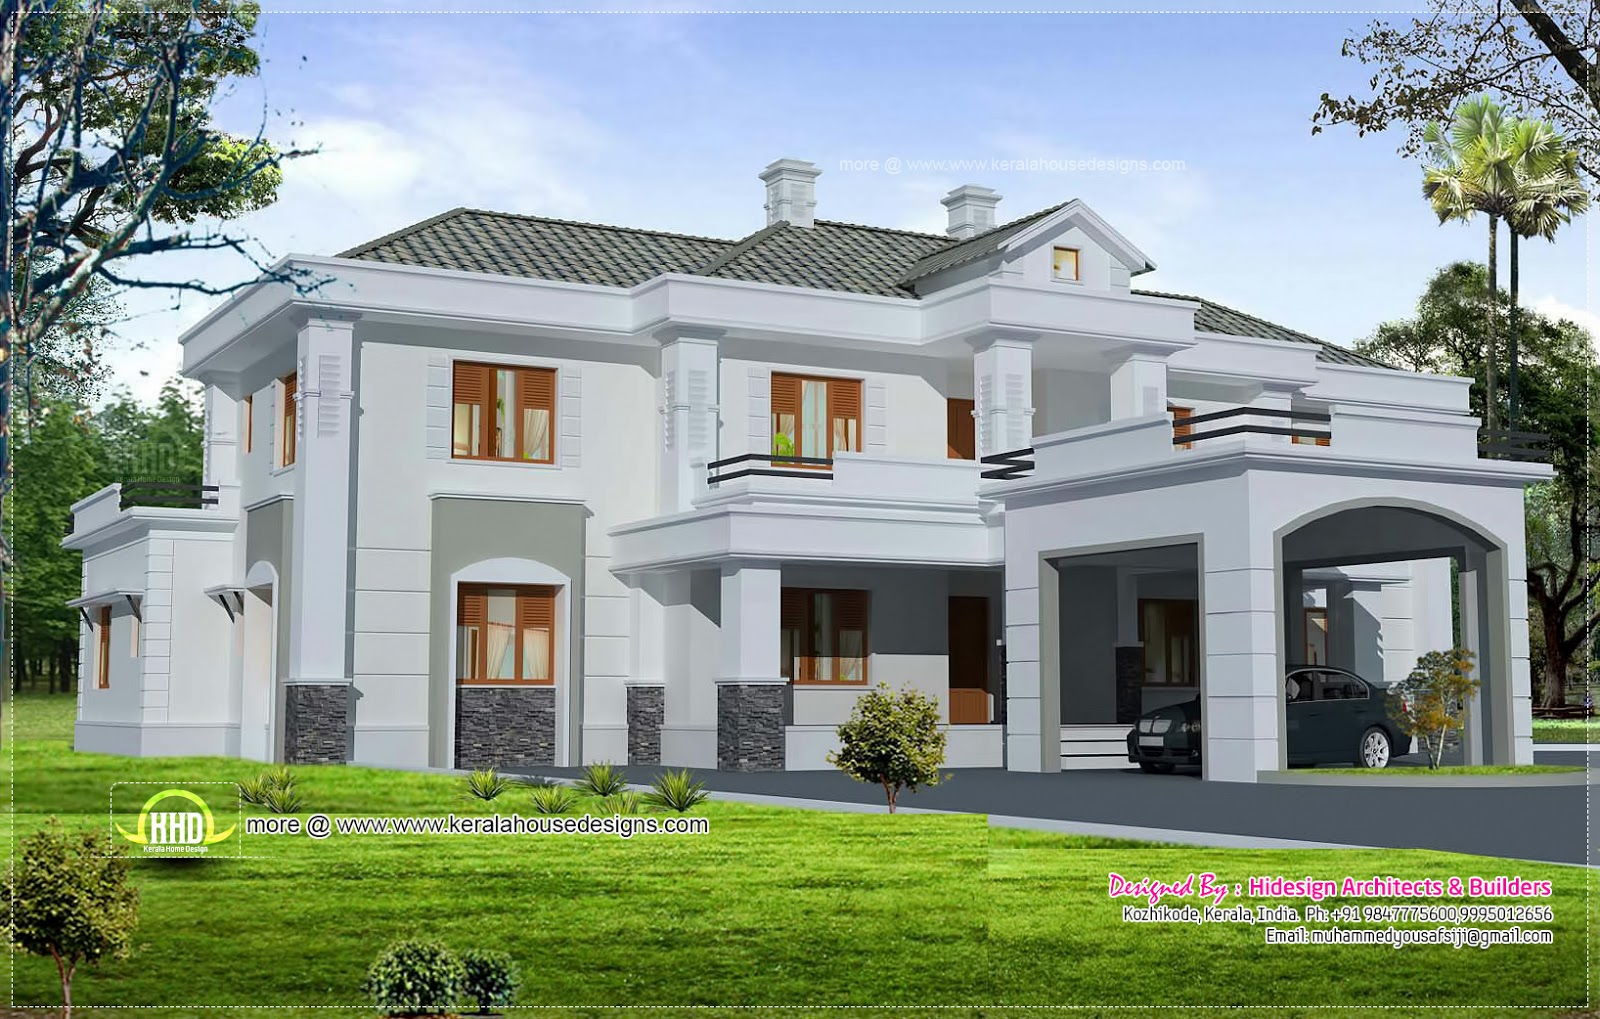 Luxury colonial style home design with court yard kerala for Luxury style house plans